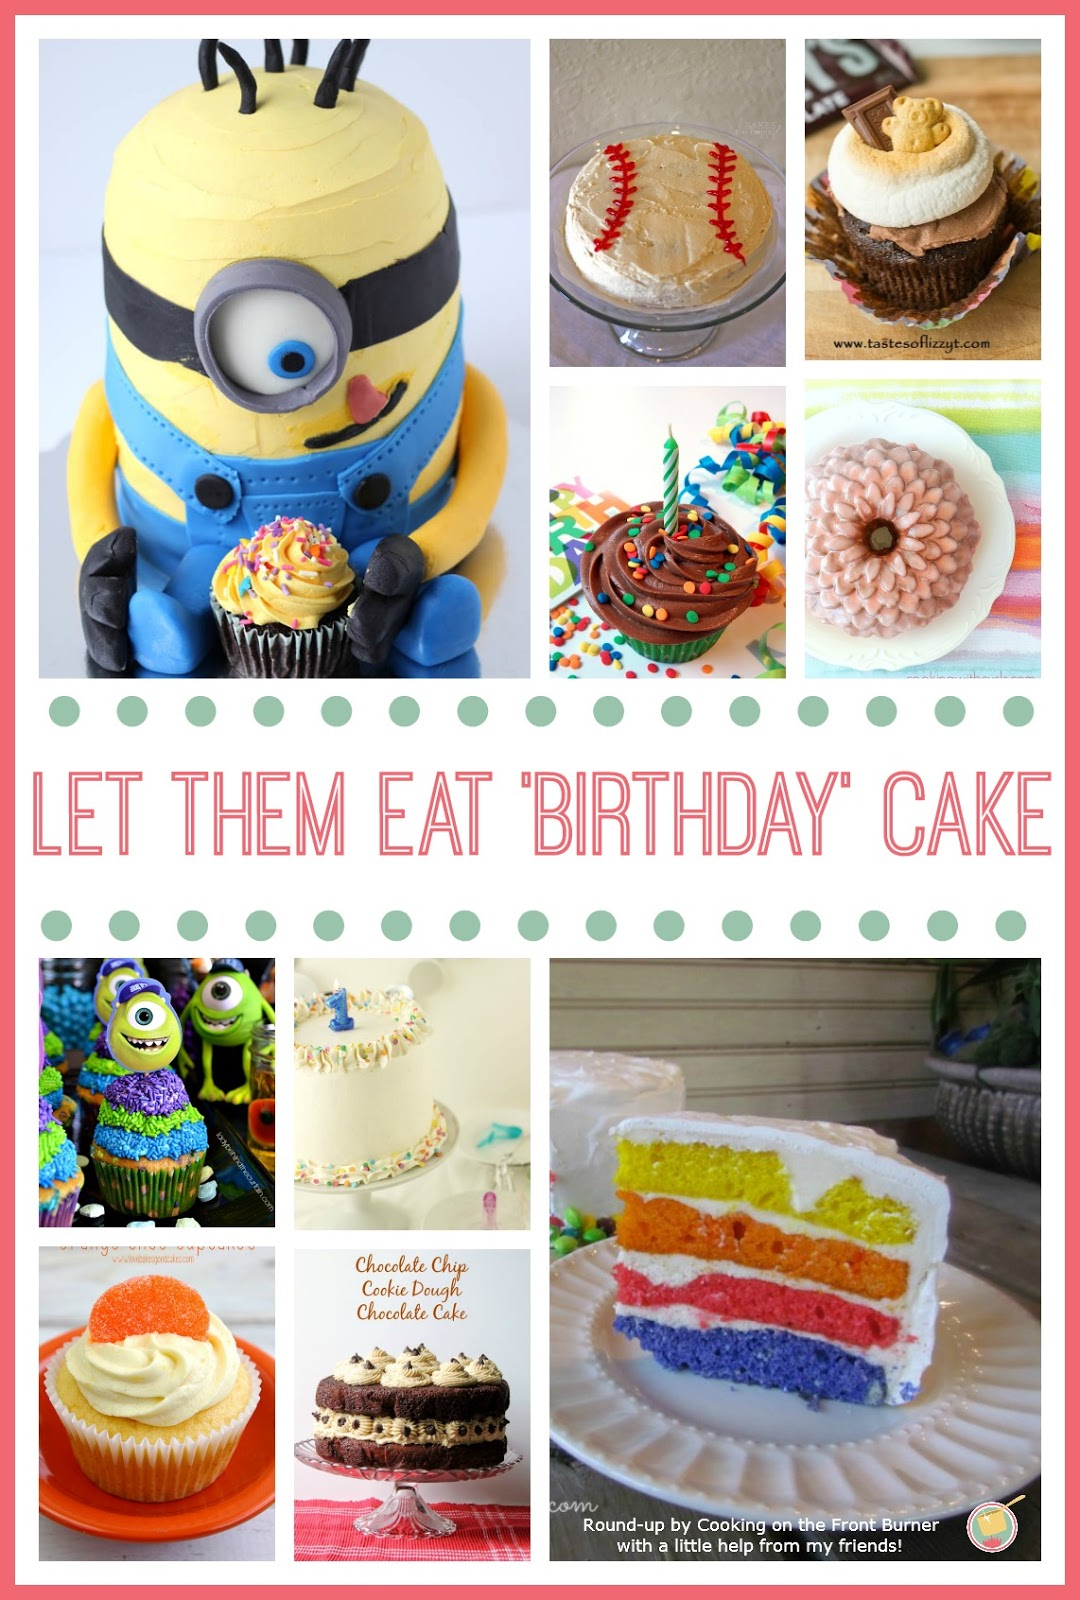 Celebrate all year long with these tasty cake recipes.